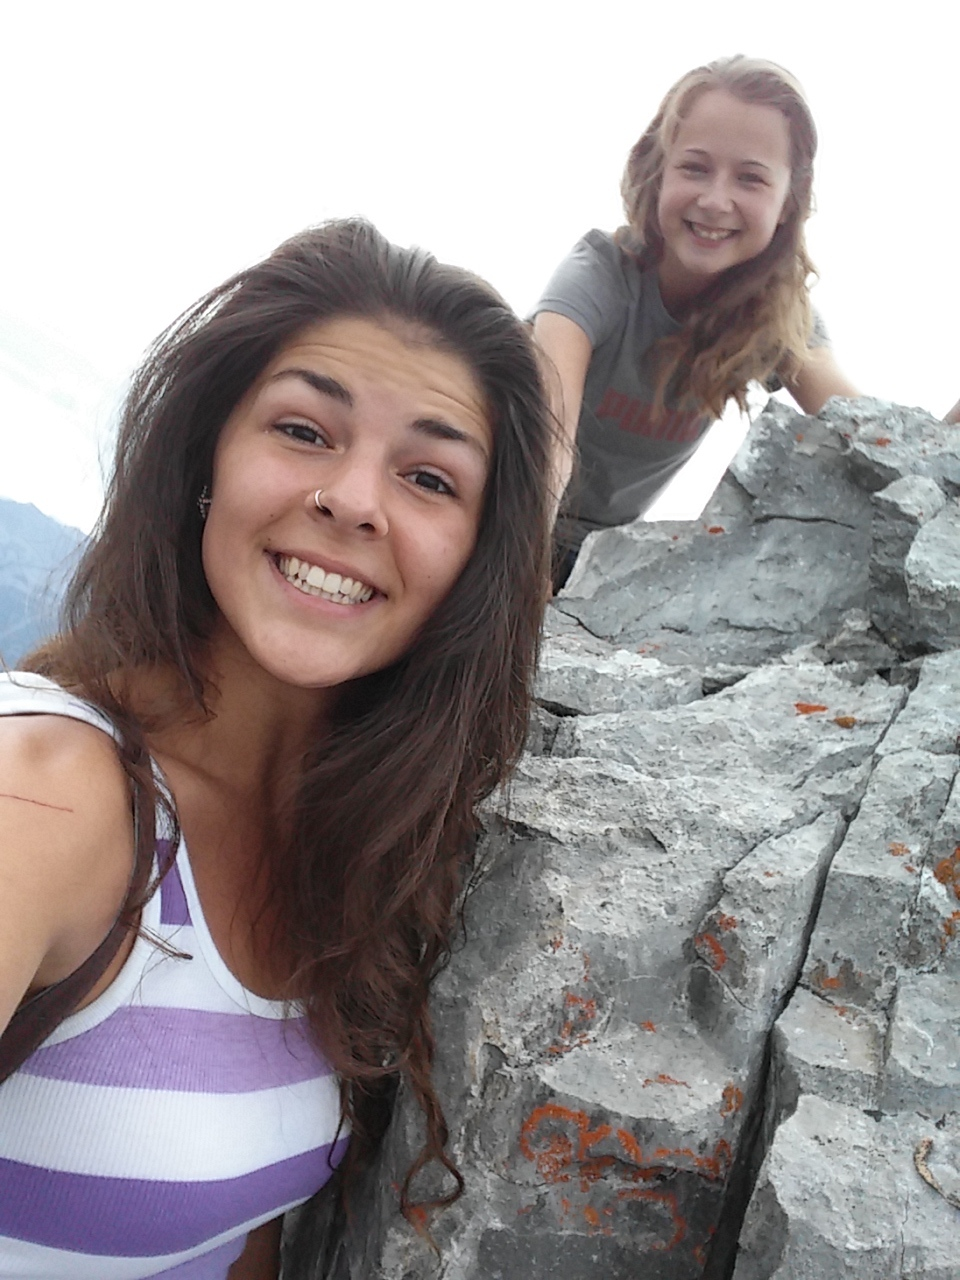 The faces of two hikers who just climbed an entire mountain! Mount Lady MacDonald is by far the hardest, yet most rewarding hike I've ever completed.